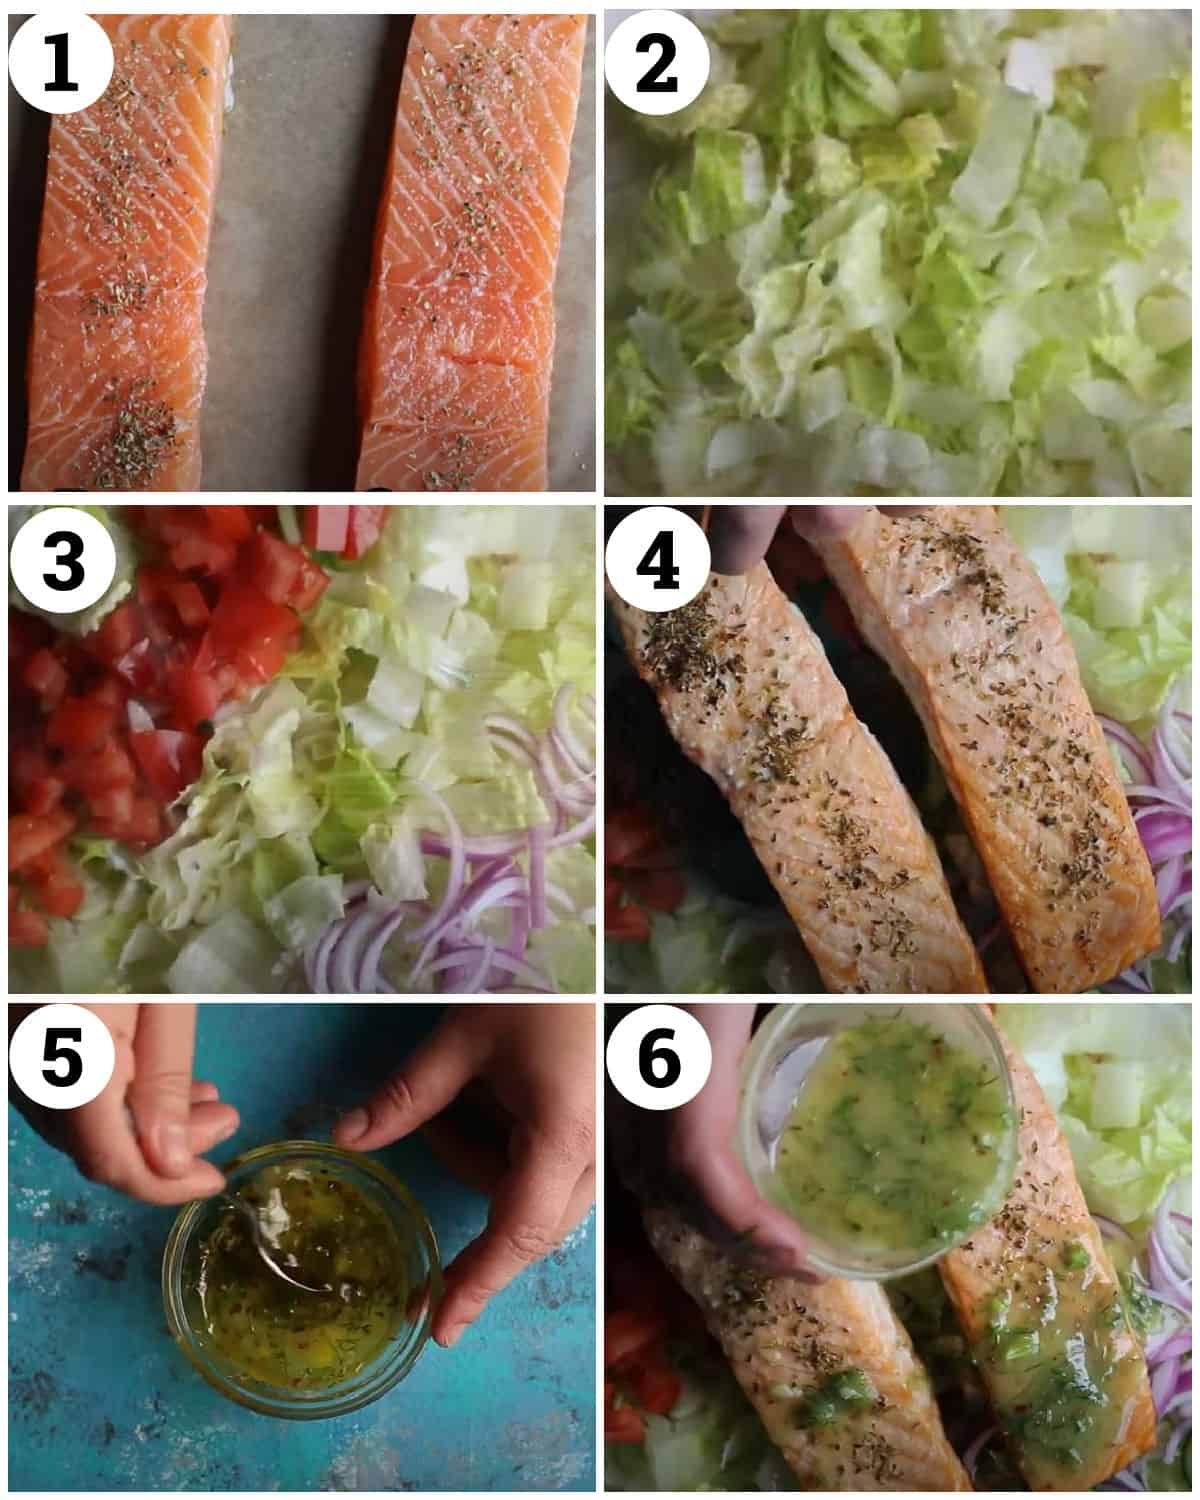 season and bake the salmon. Add it to the chopped vegetables on a plate and top with the dressing.